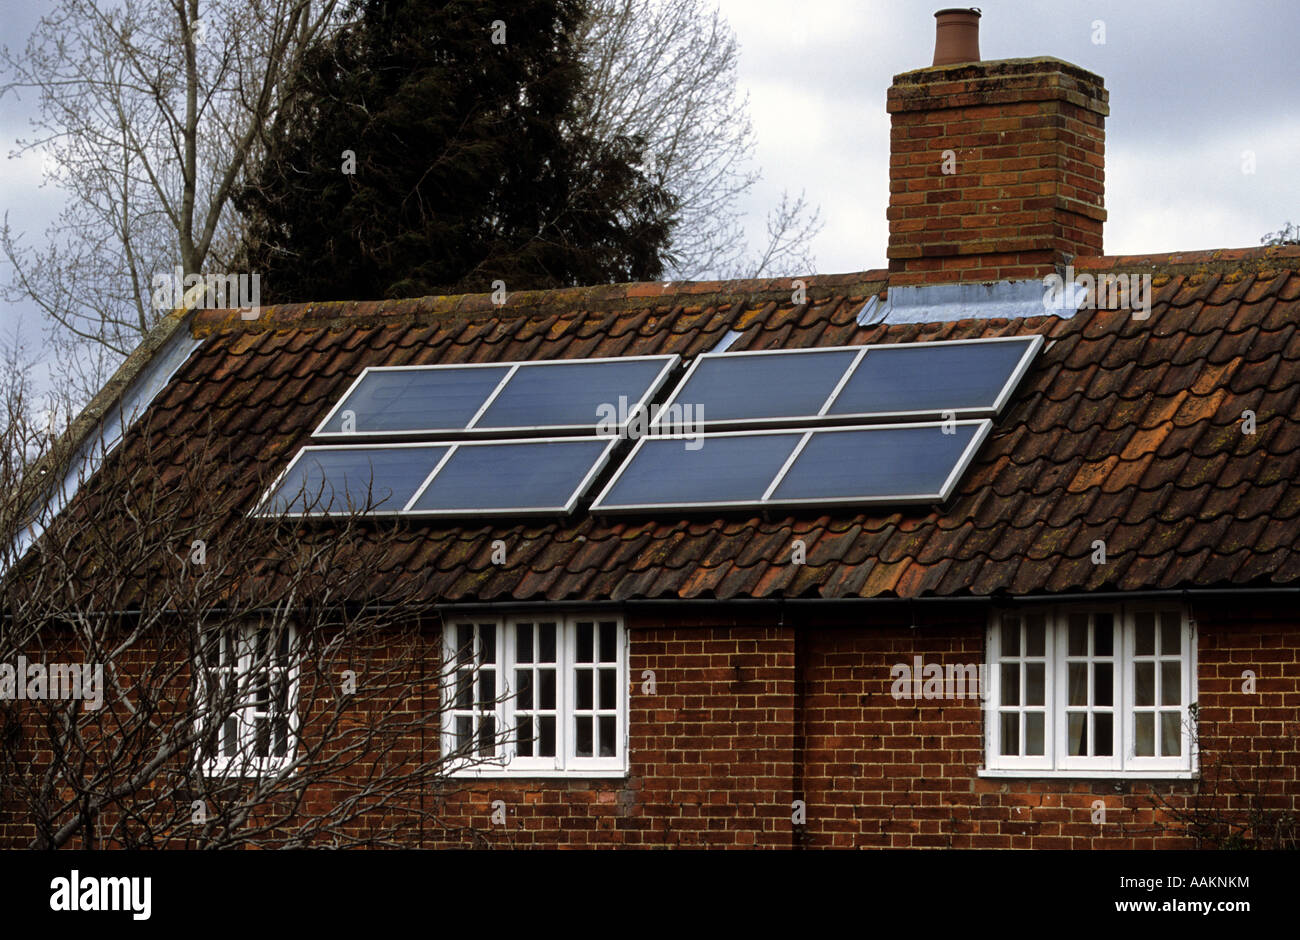 Photovoltaics or solar panels fitted to a roof of house to supply hot water, Snape, Suffolk, UK. - Stock Image